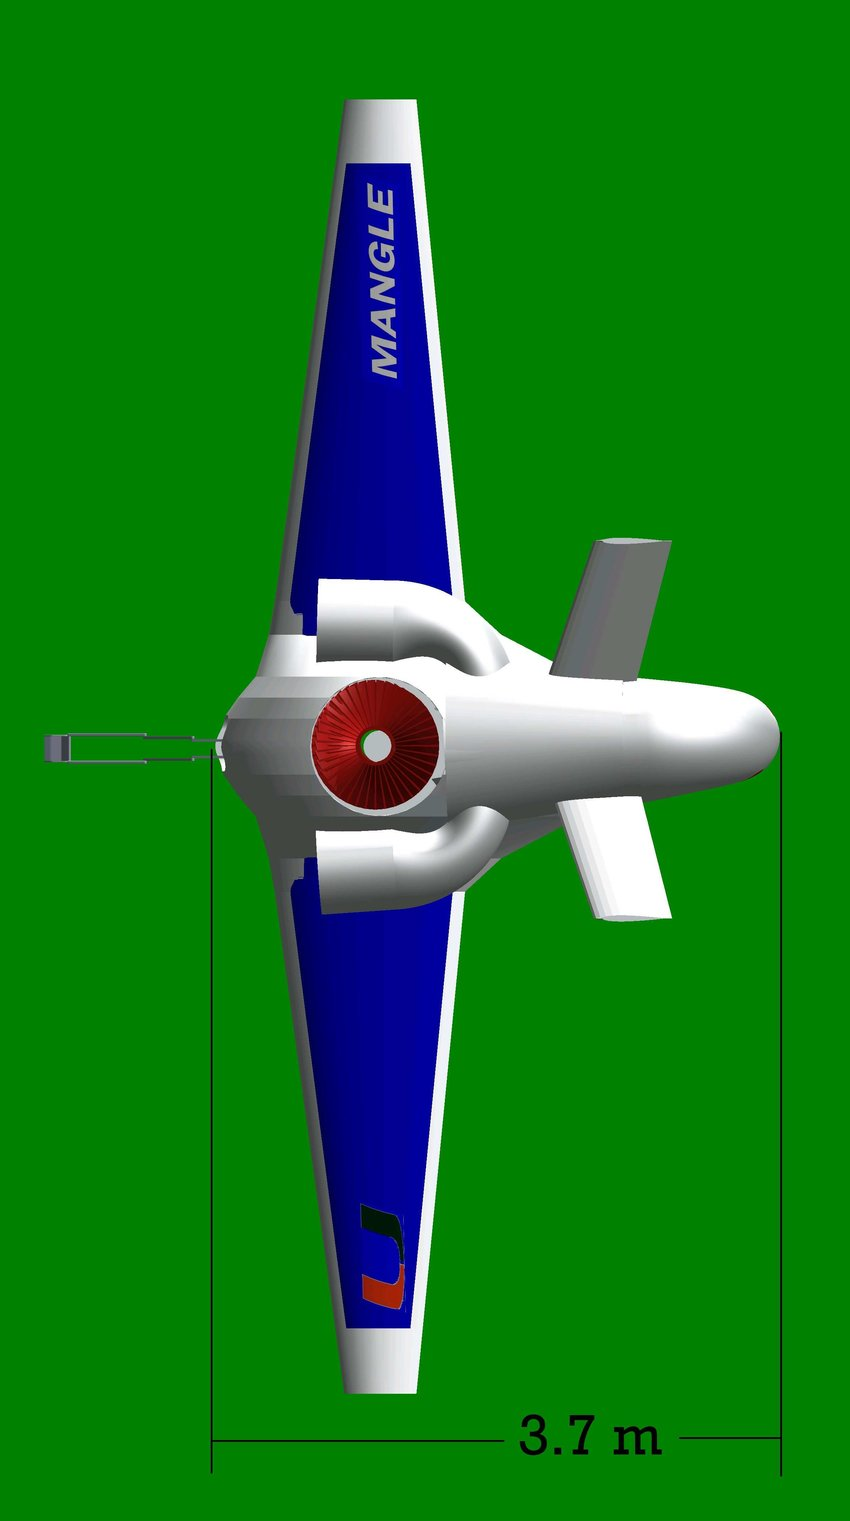 medium resolution of mangle top view for takeoff landing with mechanical arm extending out and vectored nozzle bent